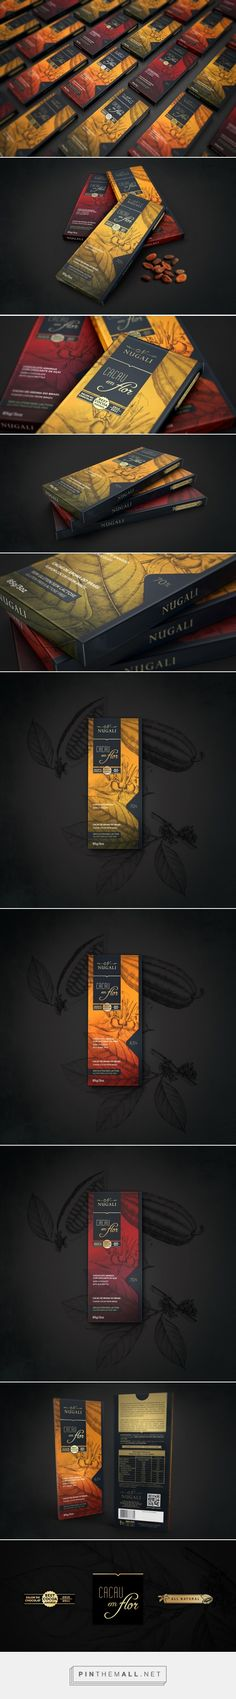 Cacau em Flor NUGALI -  Packaging of the World - Creative Package Design Gallery - http://www.packagingoftheworld.com/2016/04/cacau-em-flor-nugali.html